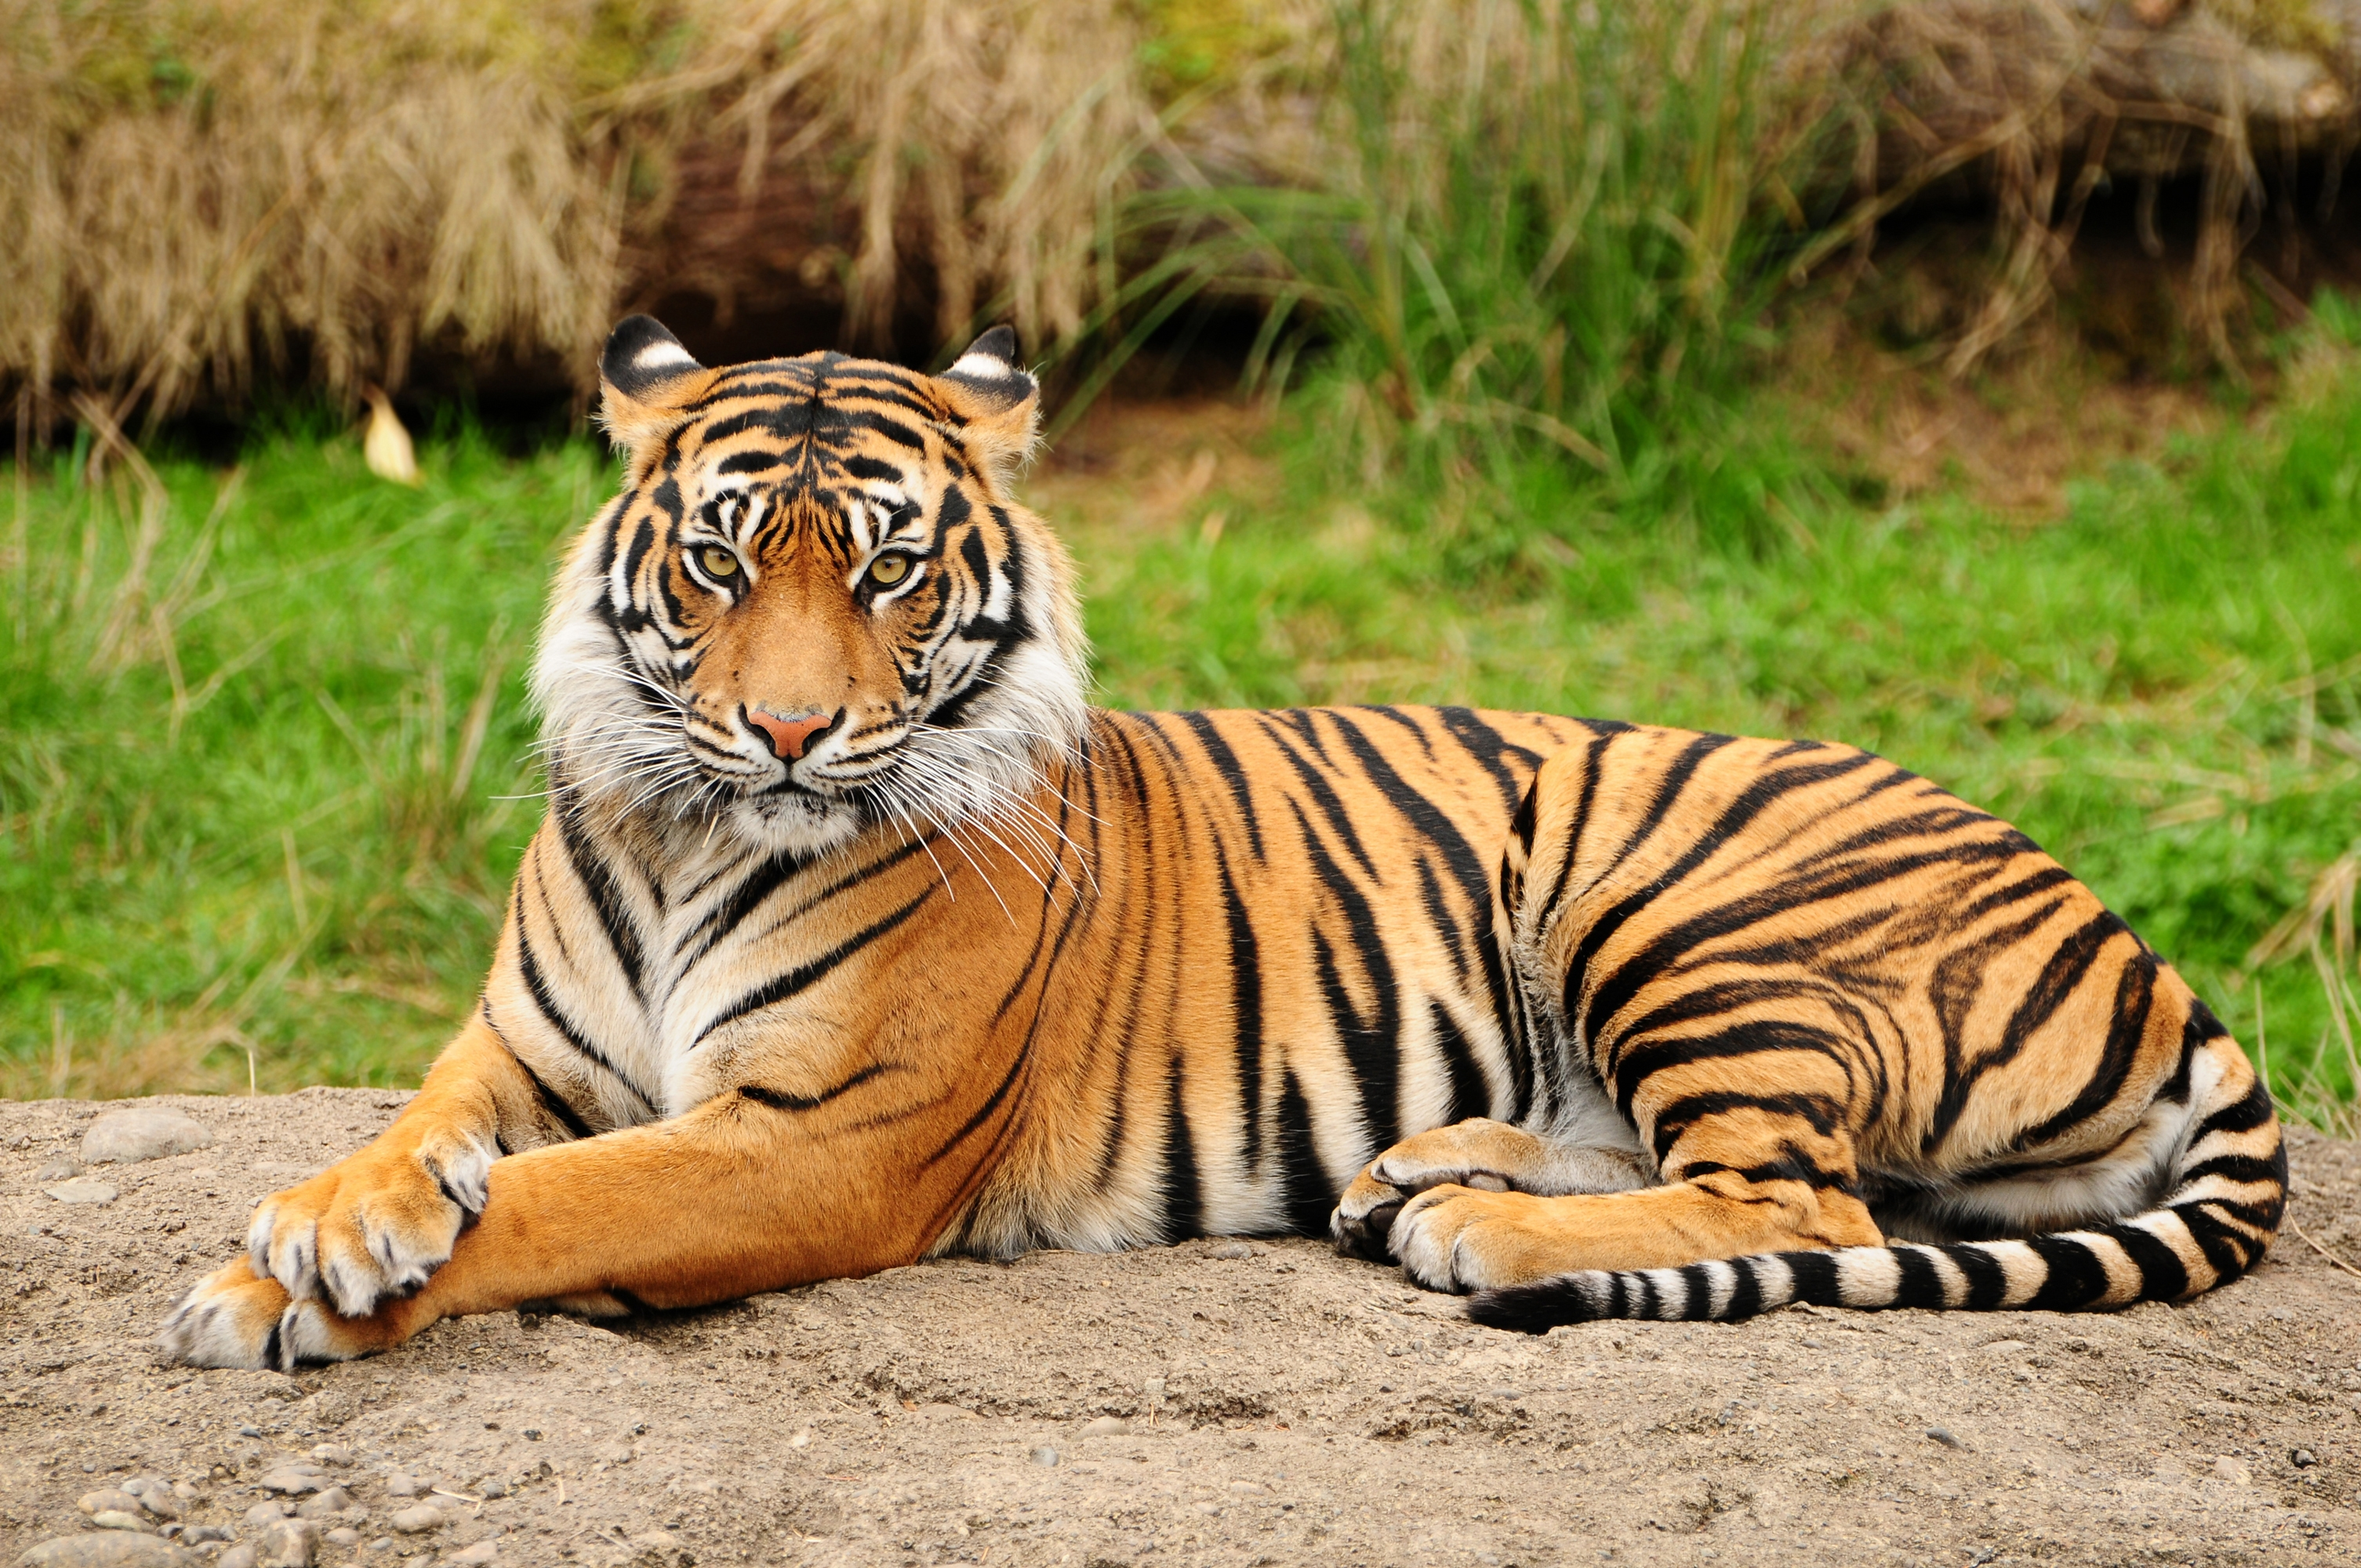 55960 download wallpaper Animals, Tiger, To Lie Down, Lie, Big Cat, Predator, Nature screensavers and pictures for free